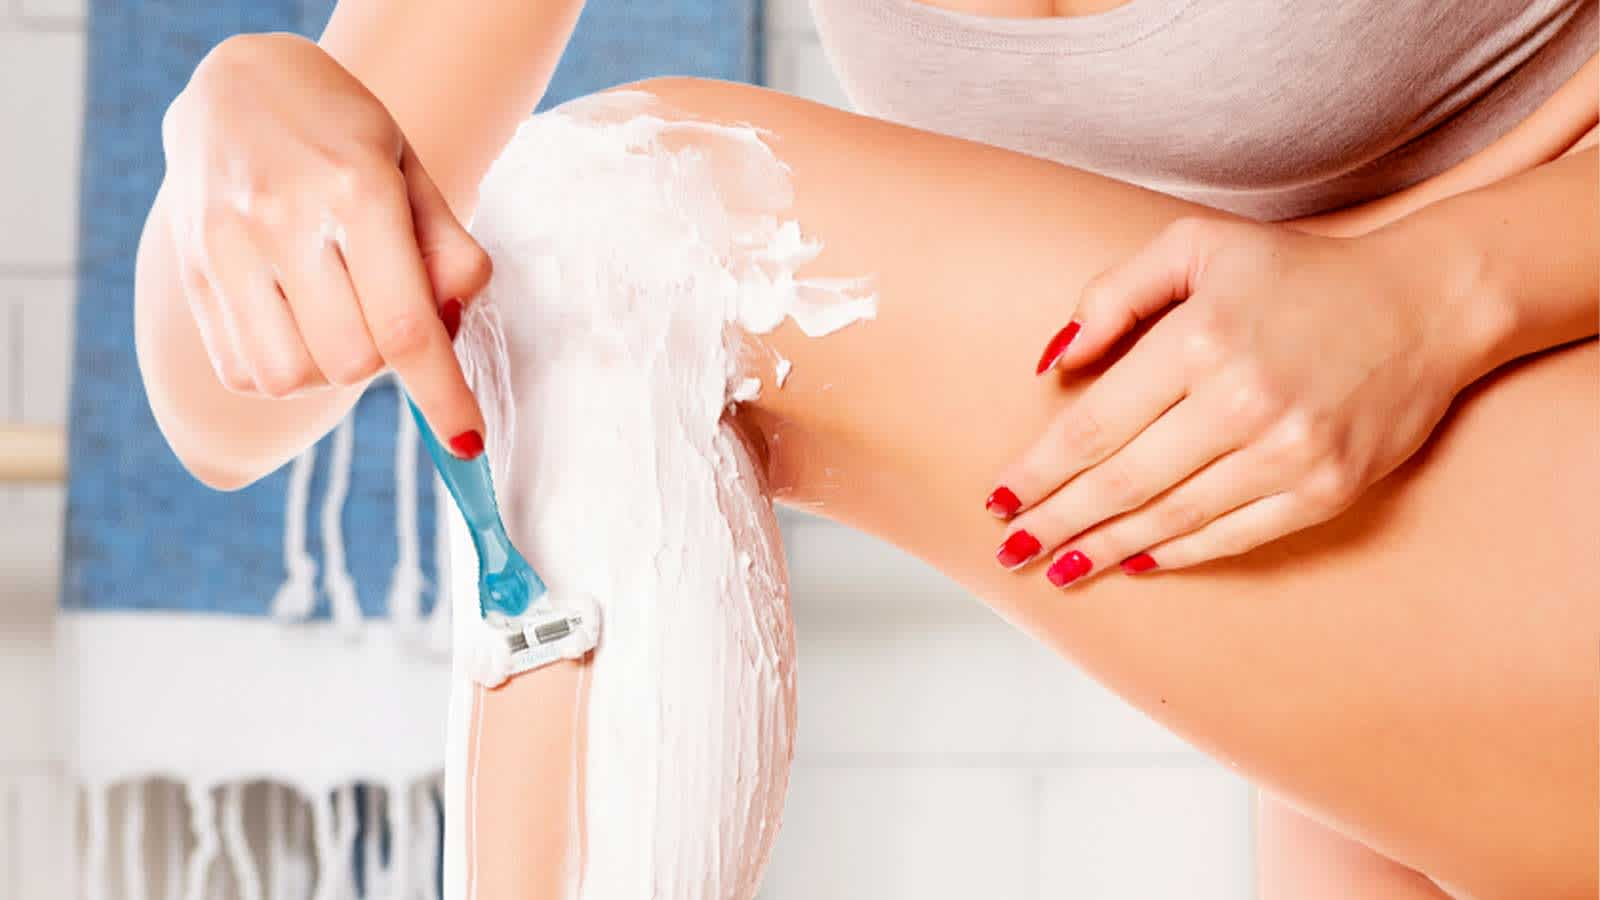 Woman Using Shaving Gel or Cream for Legs Shaving in the Bath